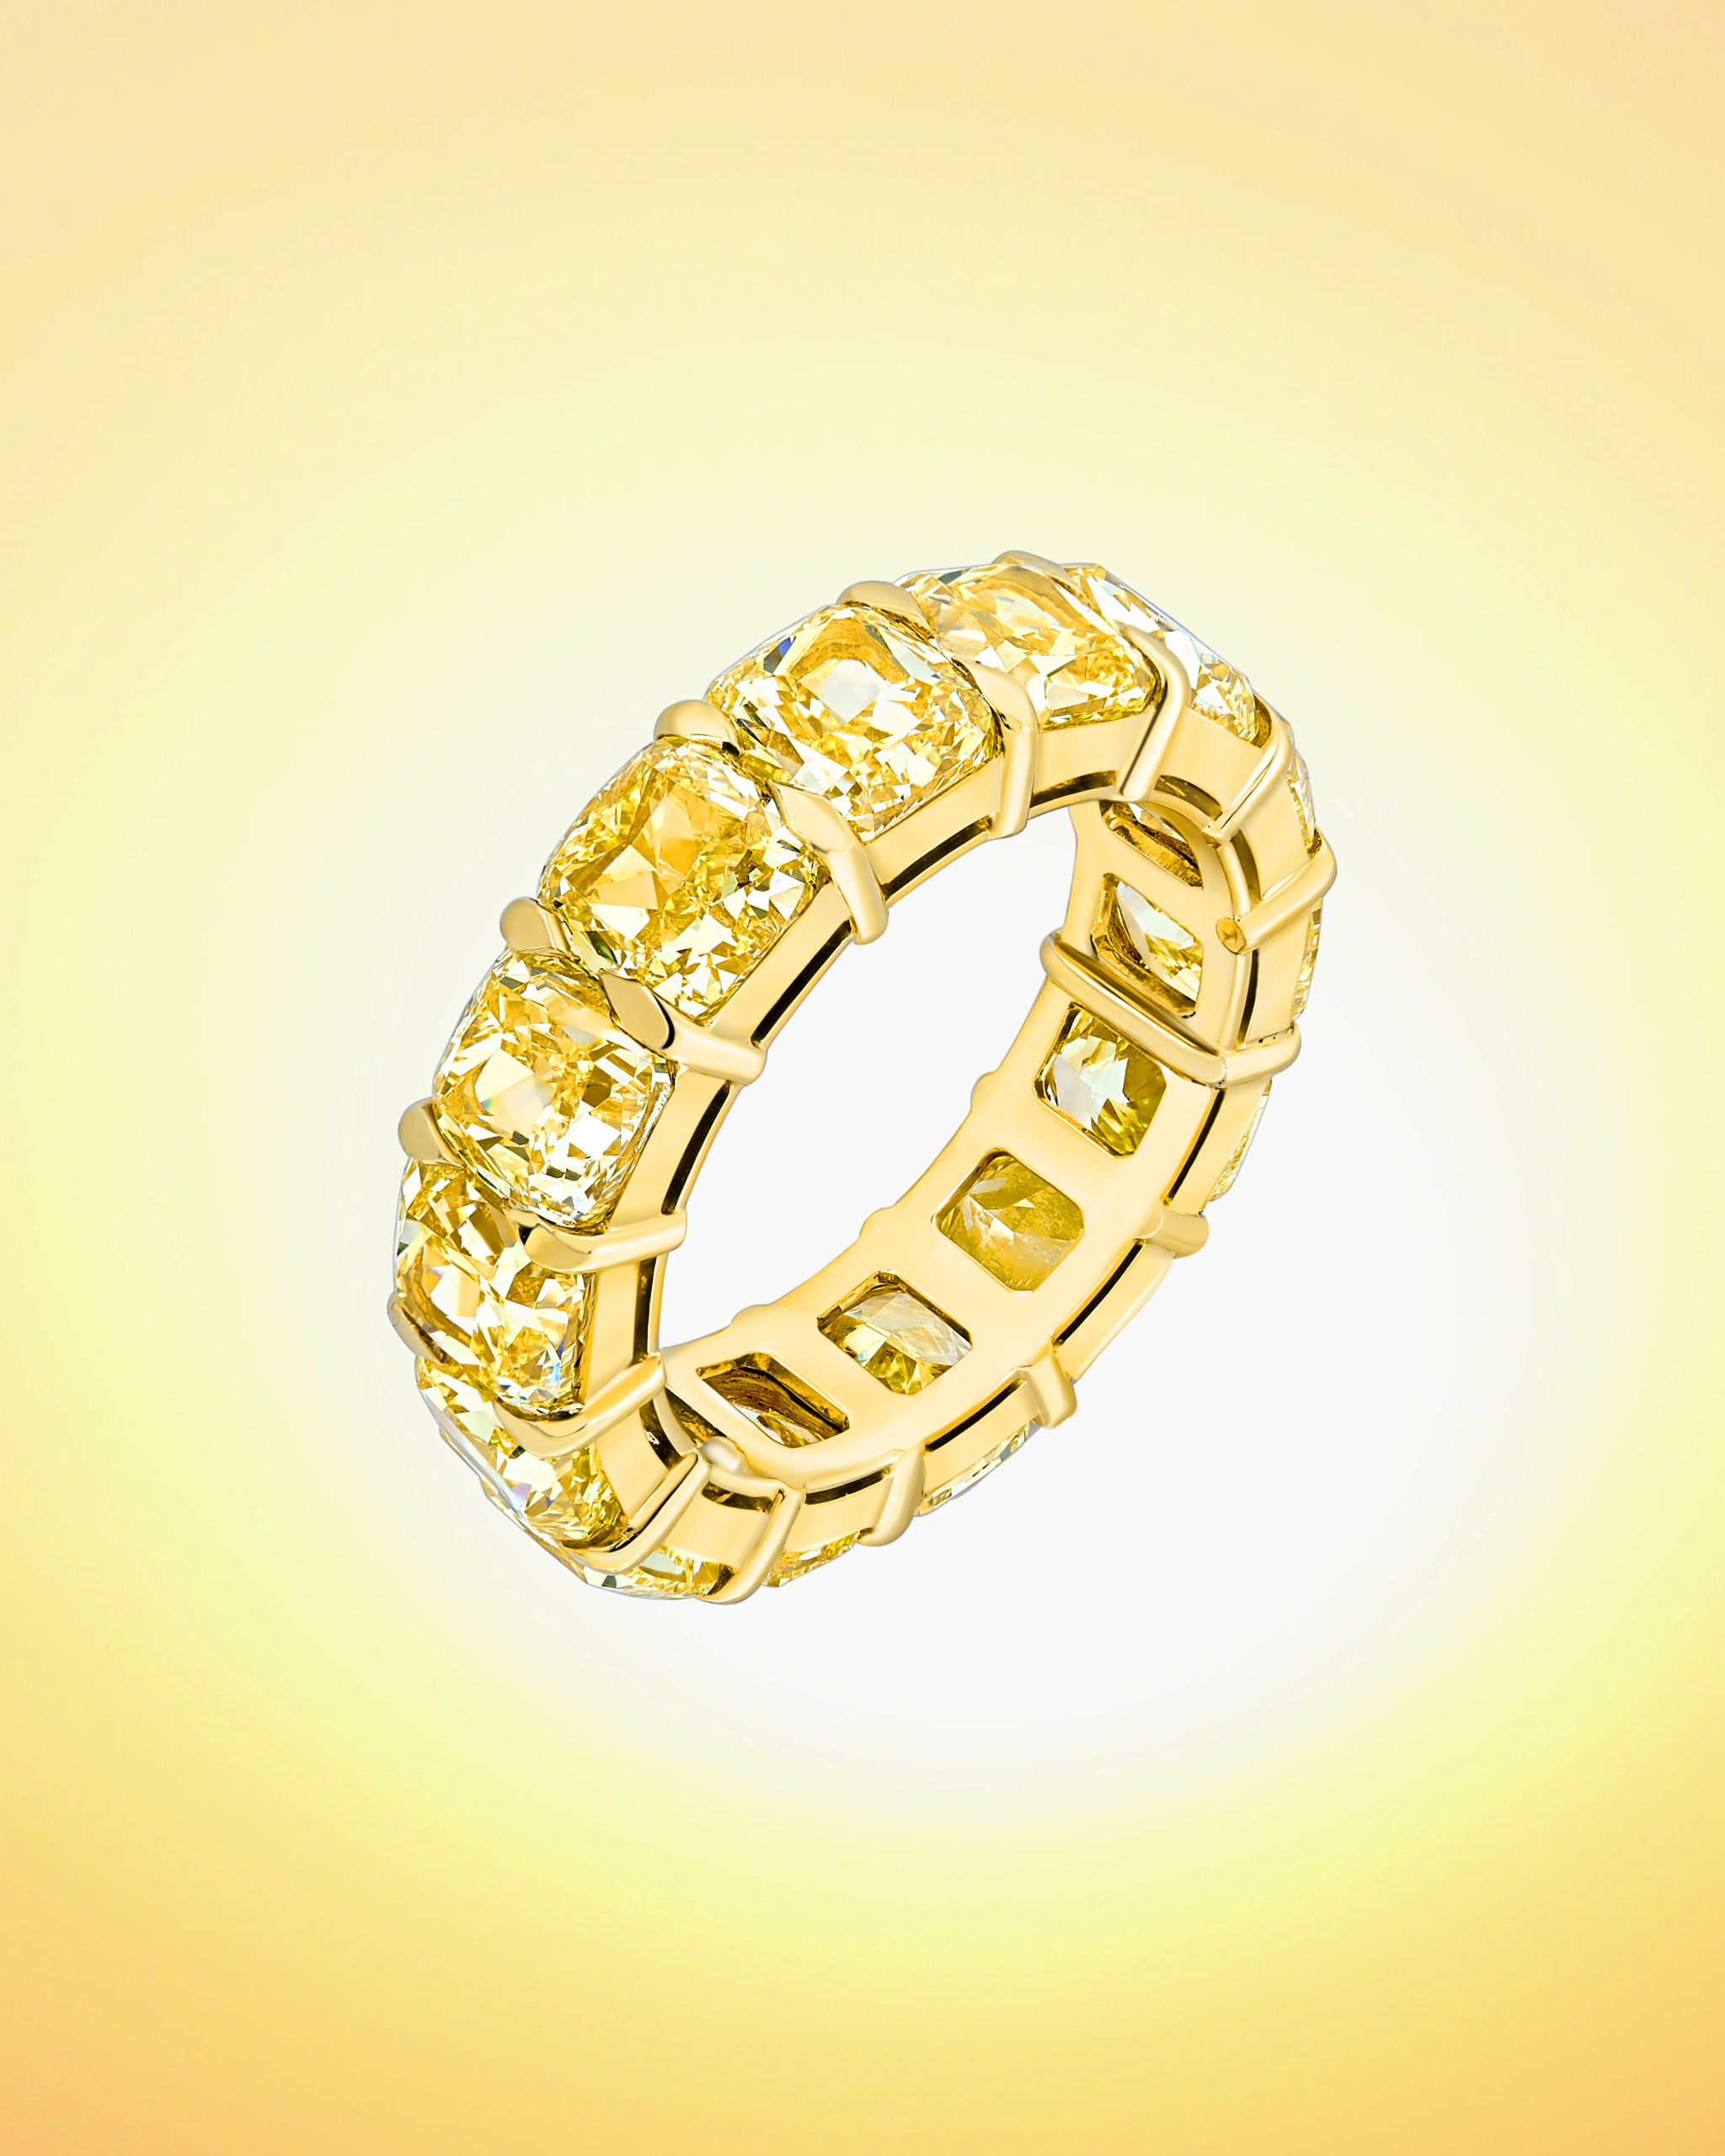 Fancy cut yellow diamond ring in the eternity ring style on a yellow gold band by David Morris